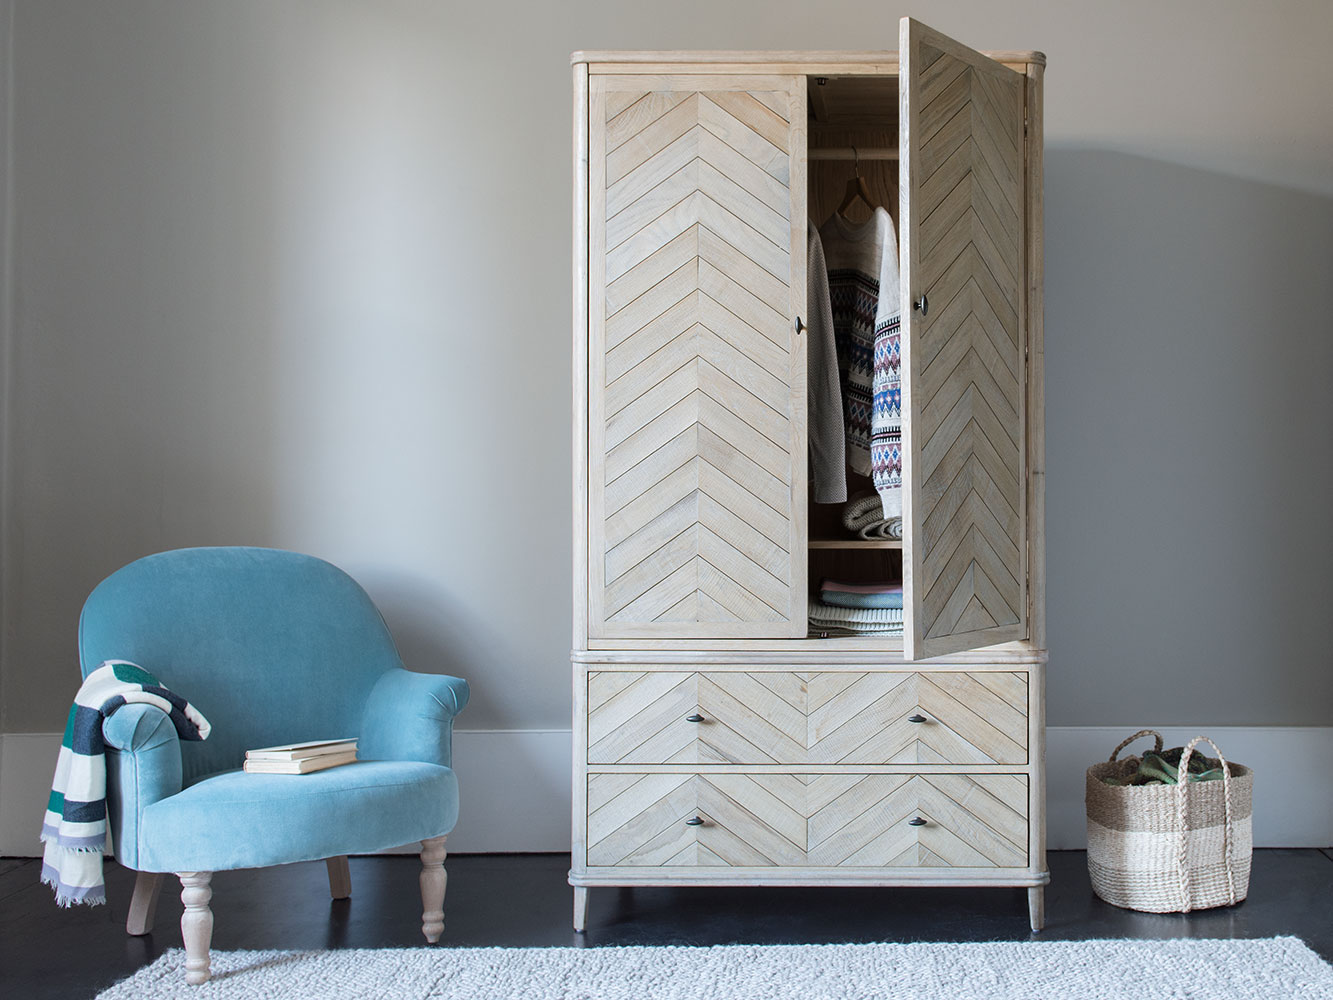 Loaf Super Flapper £1595 matching products available.   https://loaf.com/products/super-flapper-wardrobe